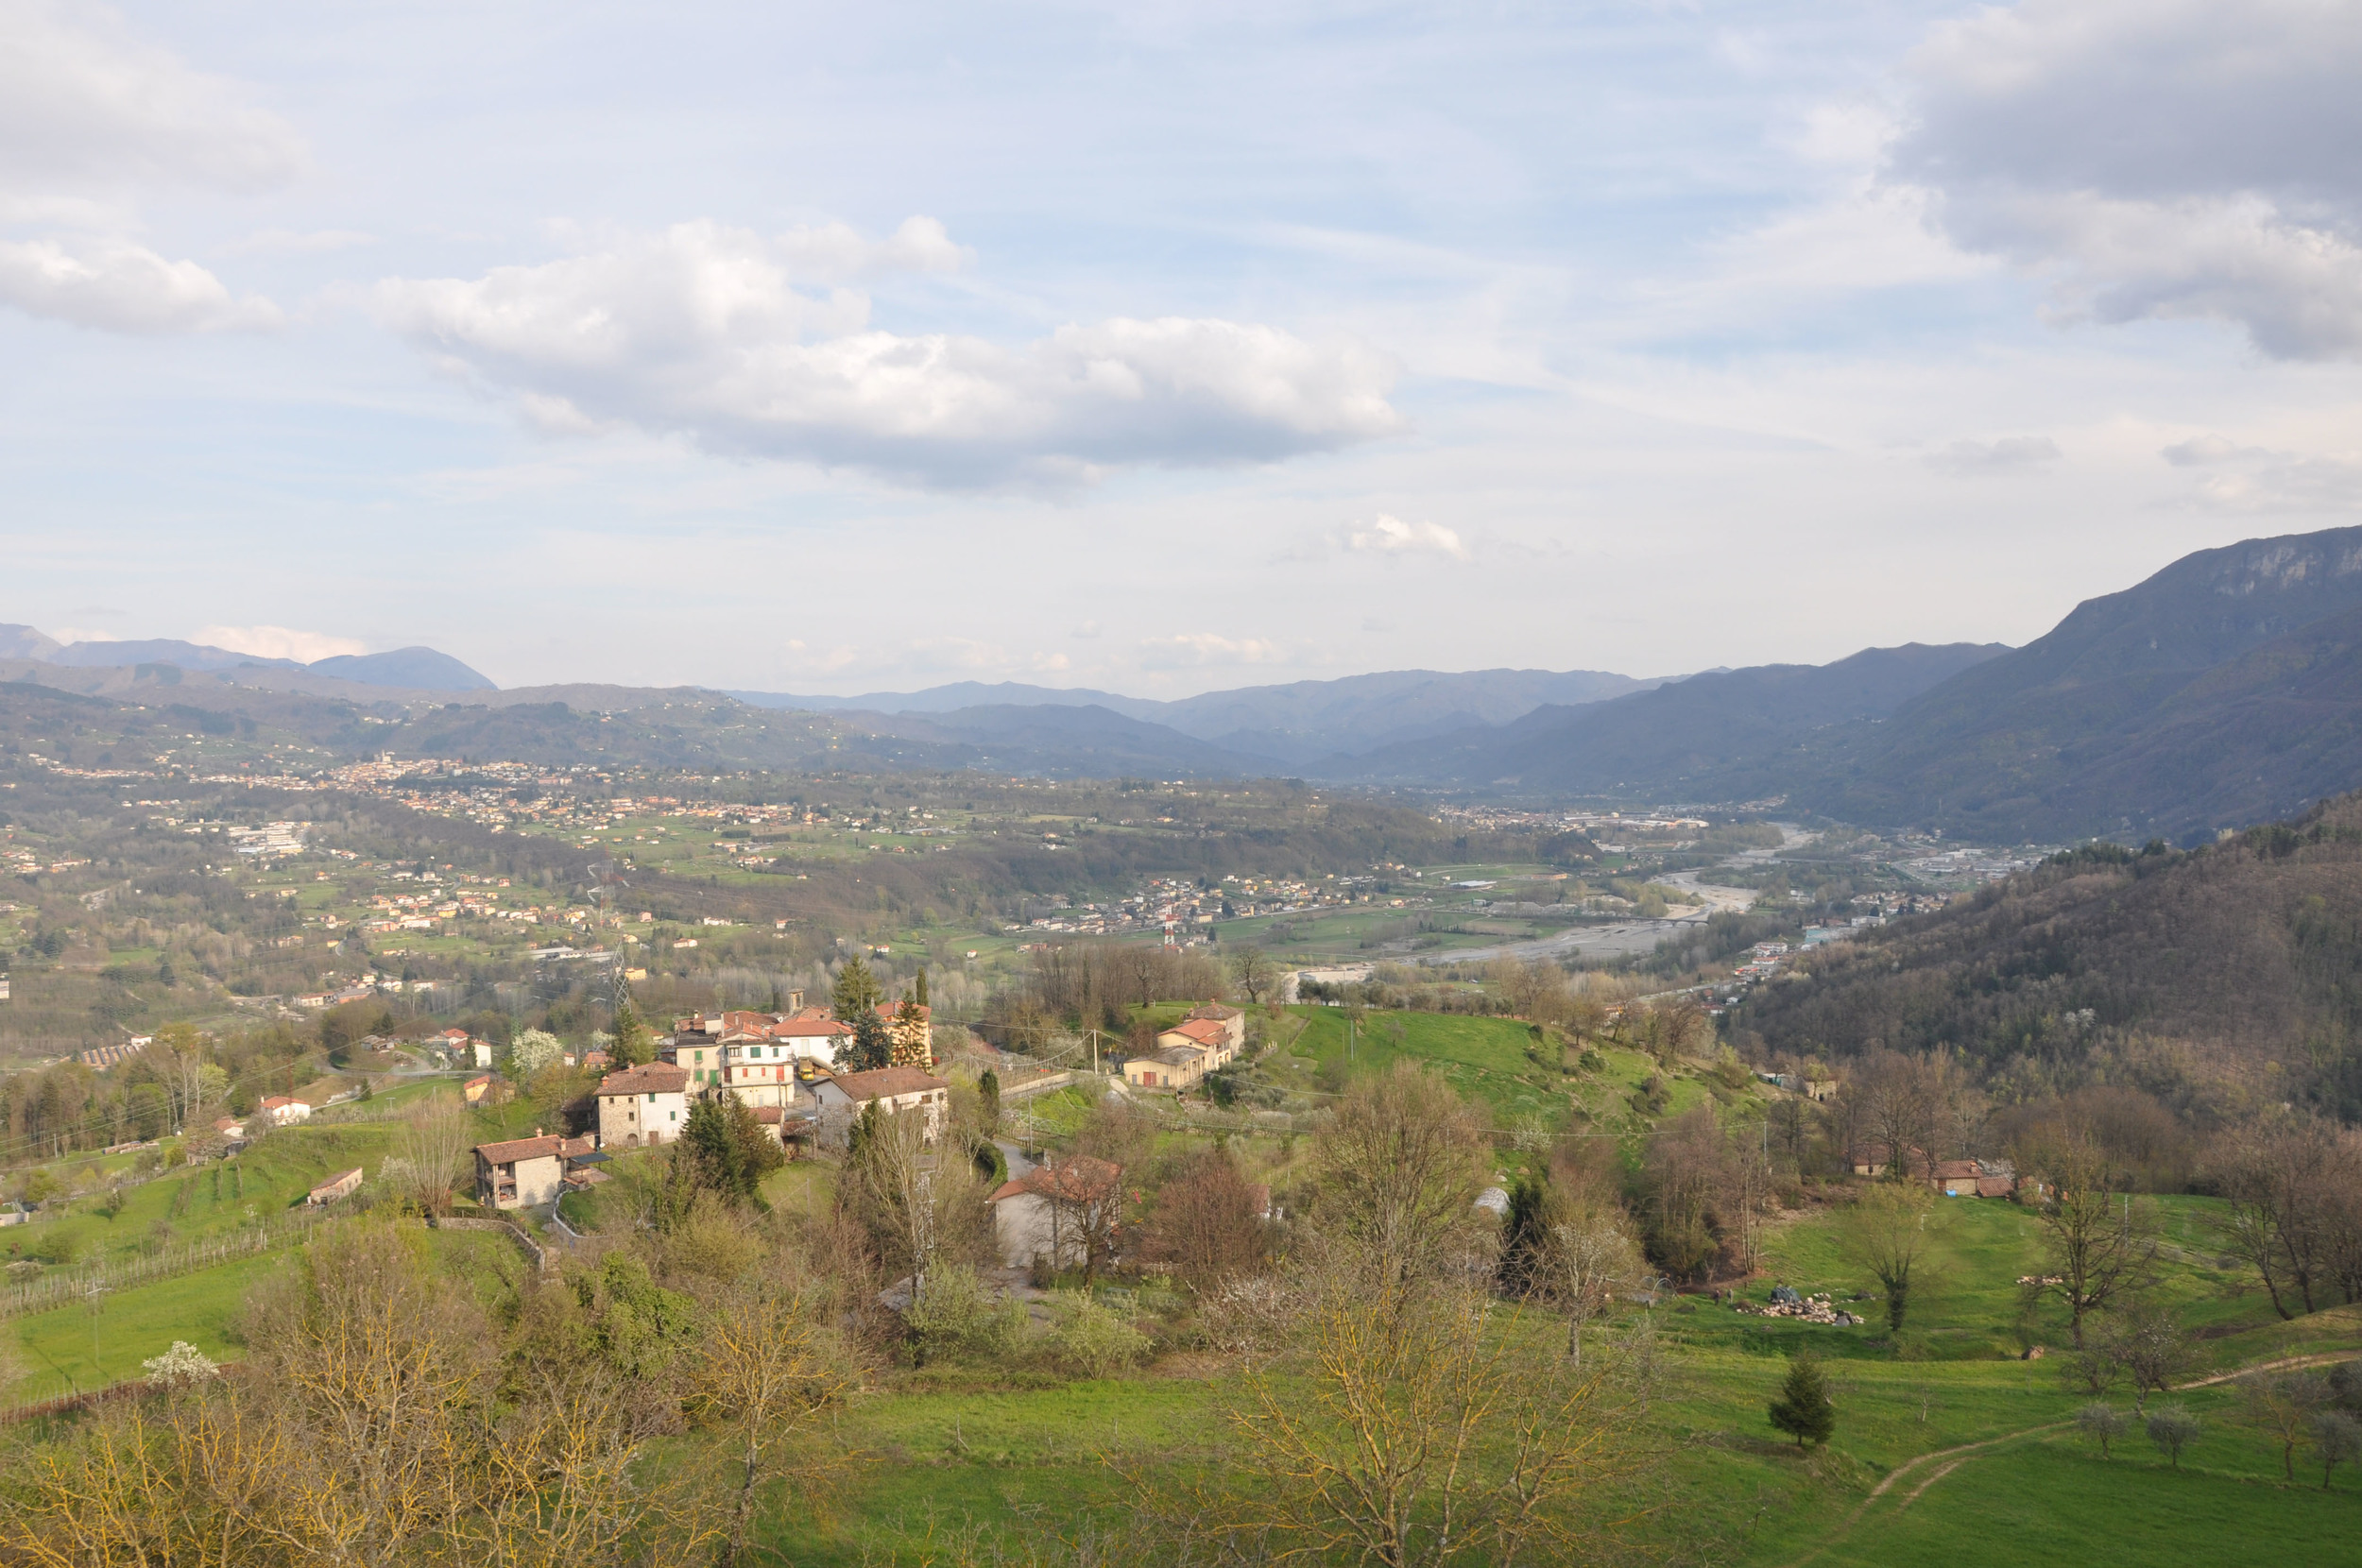 Serchio Valley